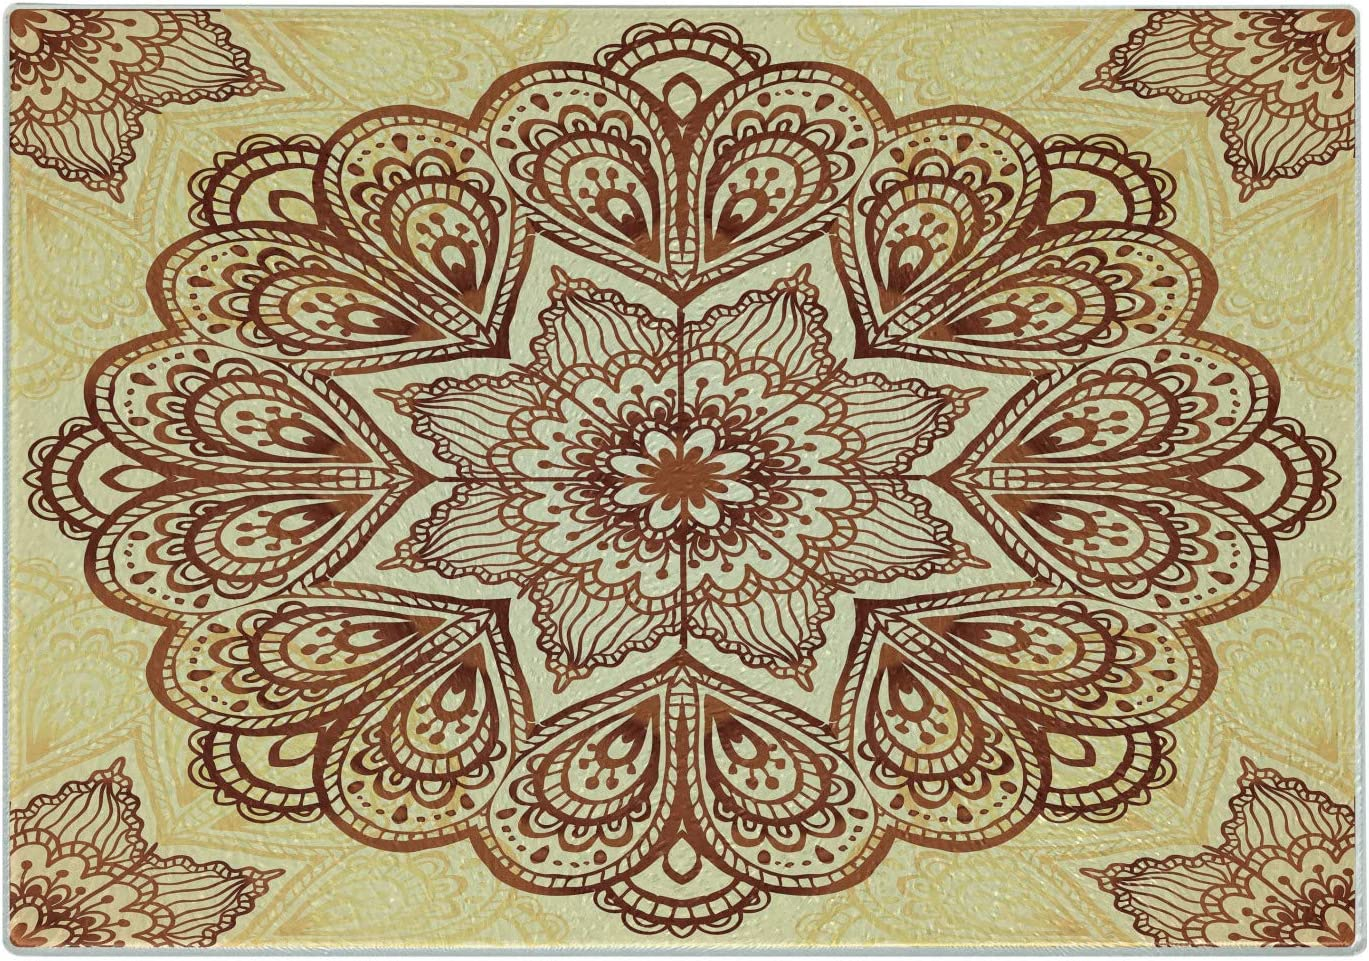 Amazon Com Lunarable Mandala Cutting Board Floral Mandala Circular Form Pattern Vintage Style Image Decorative Tempered Glass Cutting And Serving Board Large Size Chocolate Cream Kitchen Dining